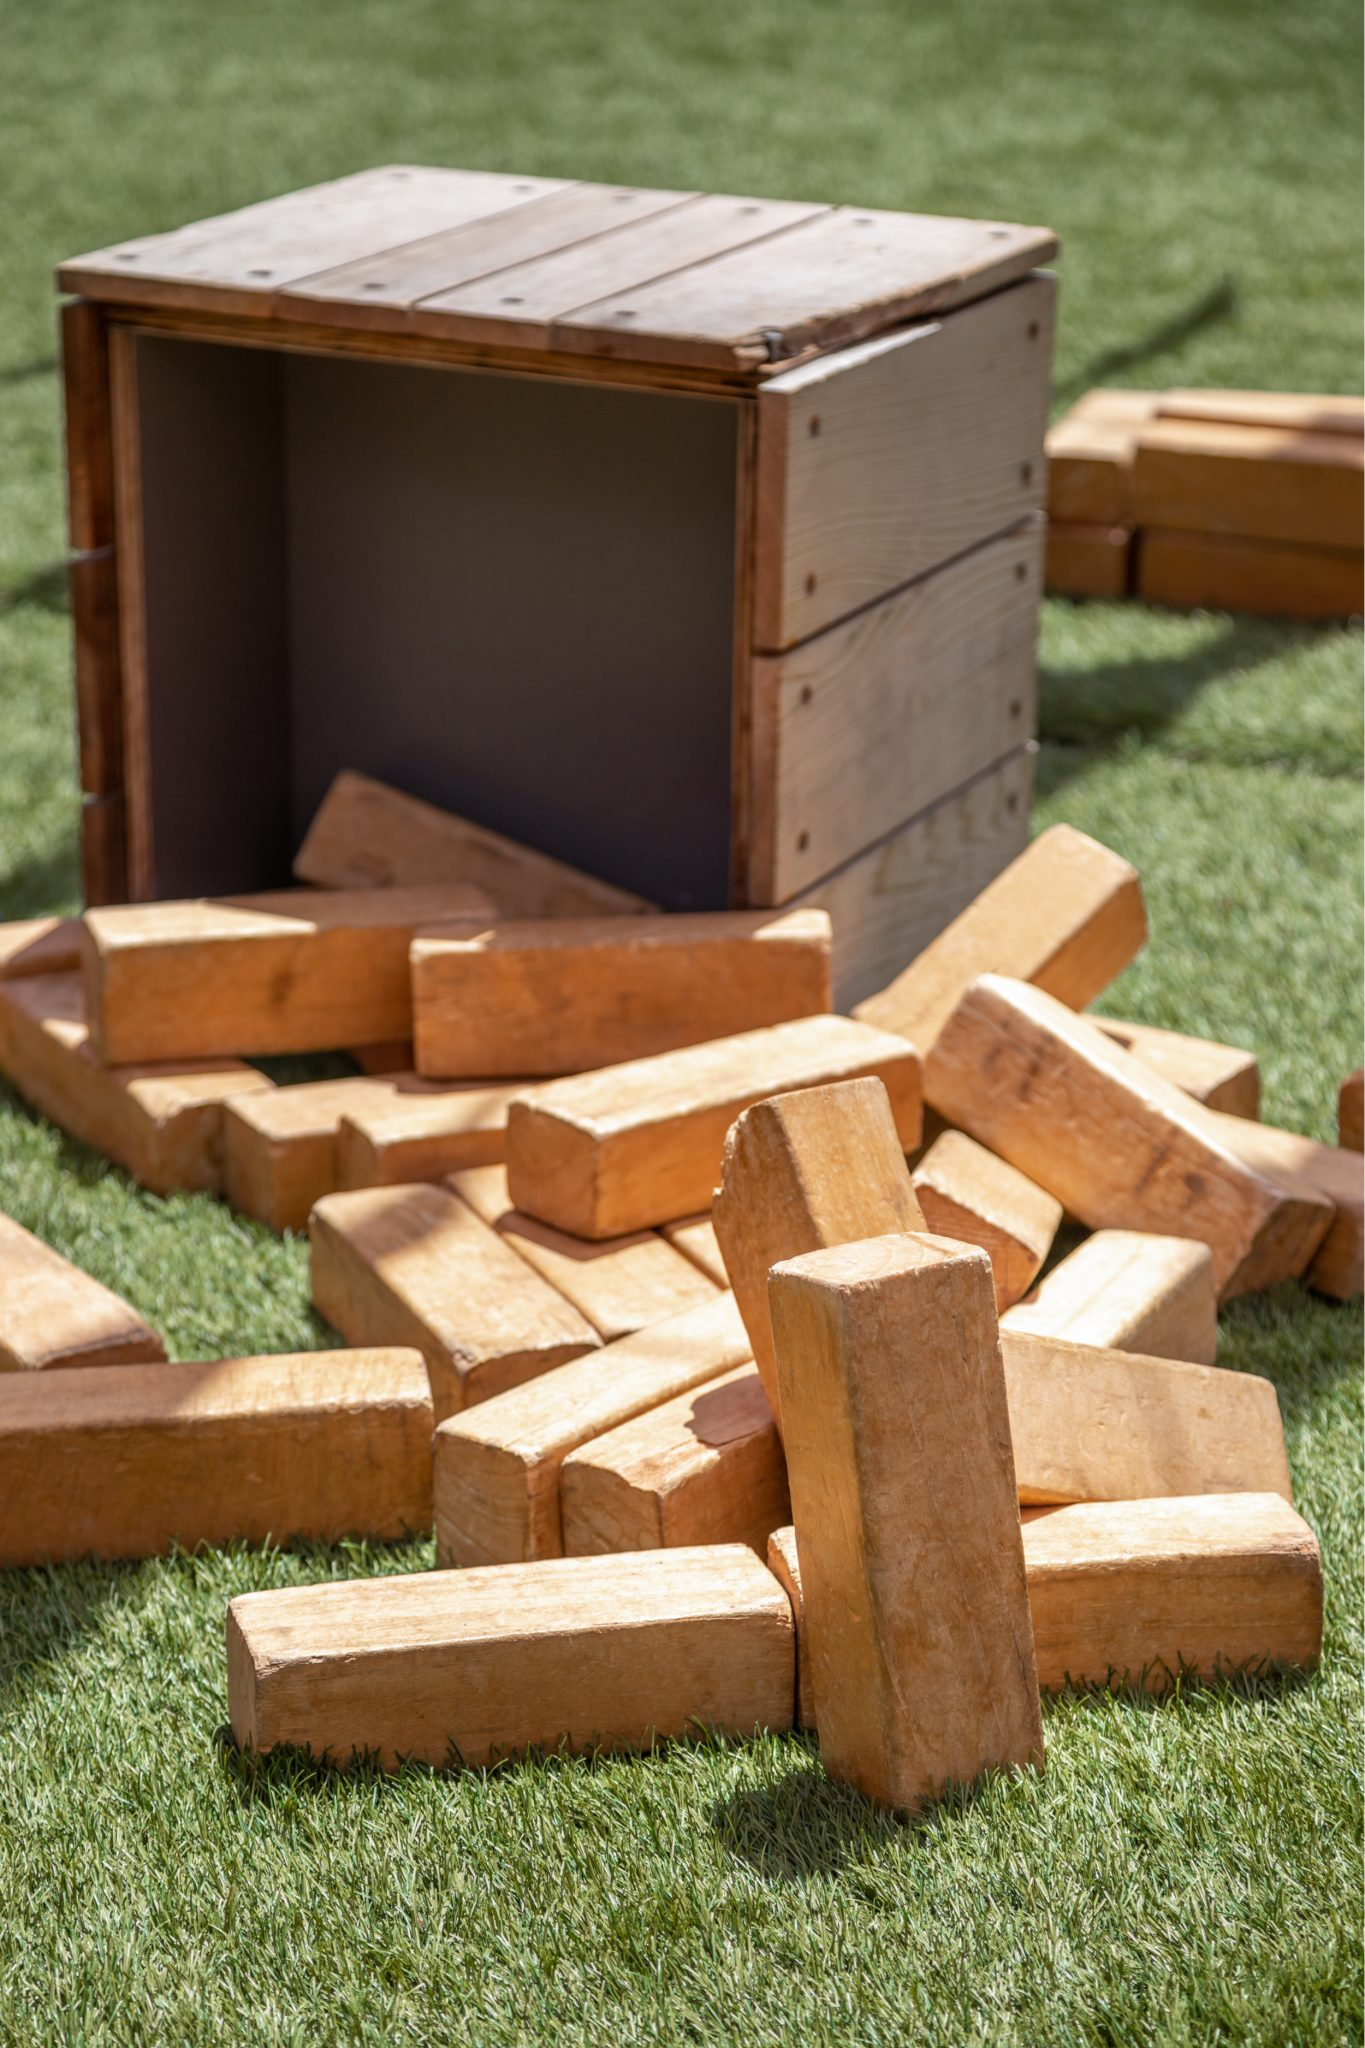 DIY Lawn Games for adults